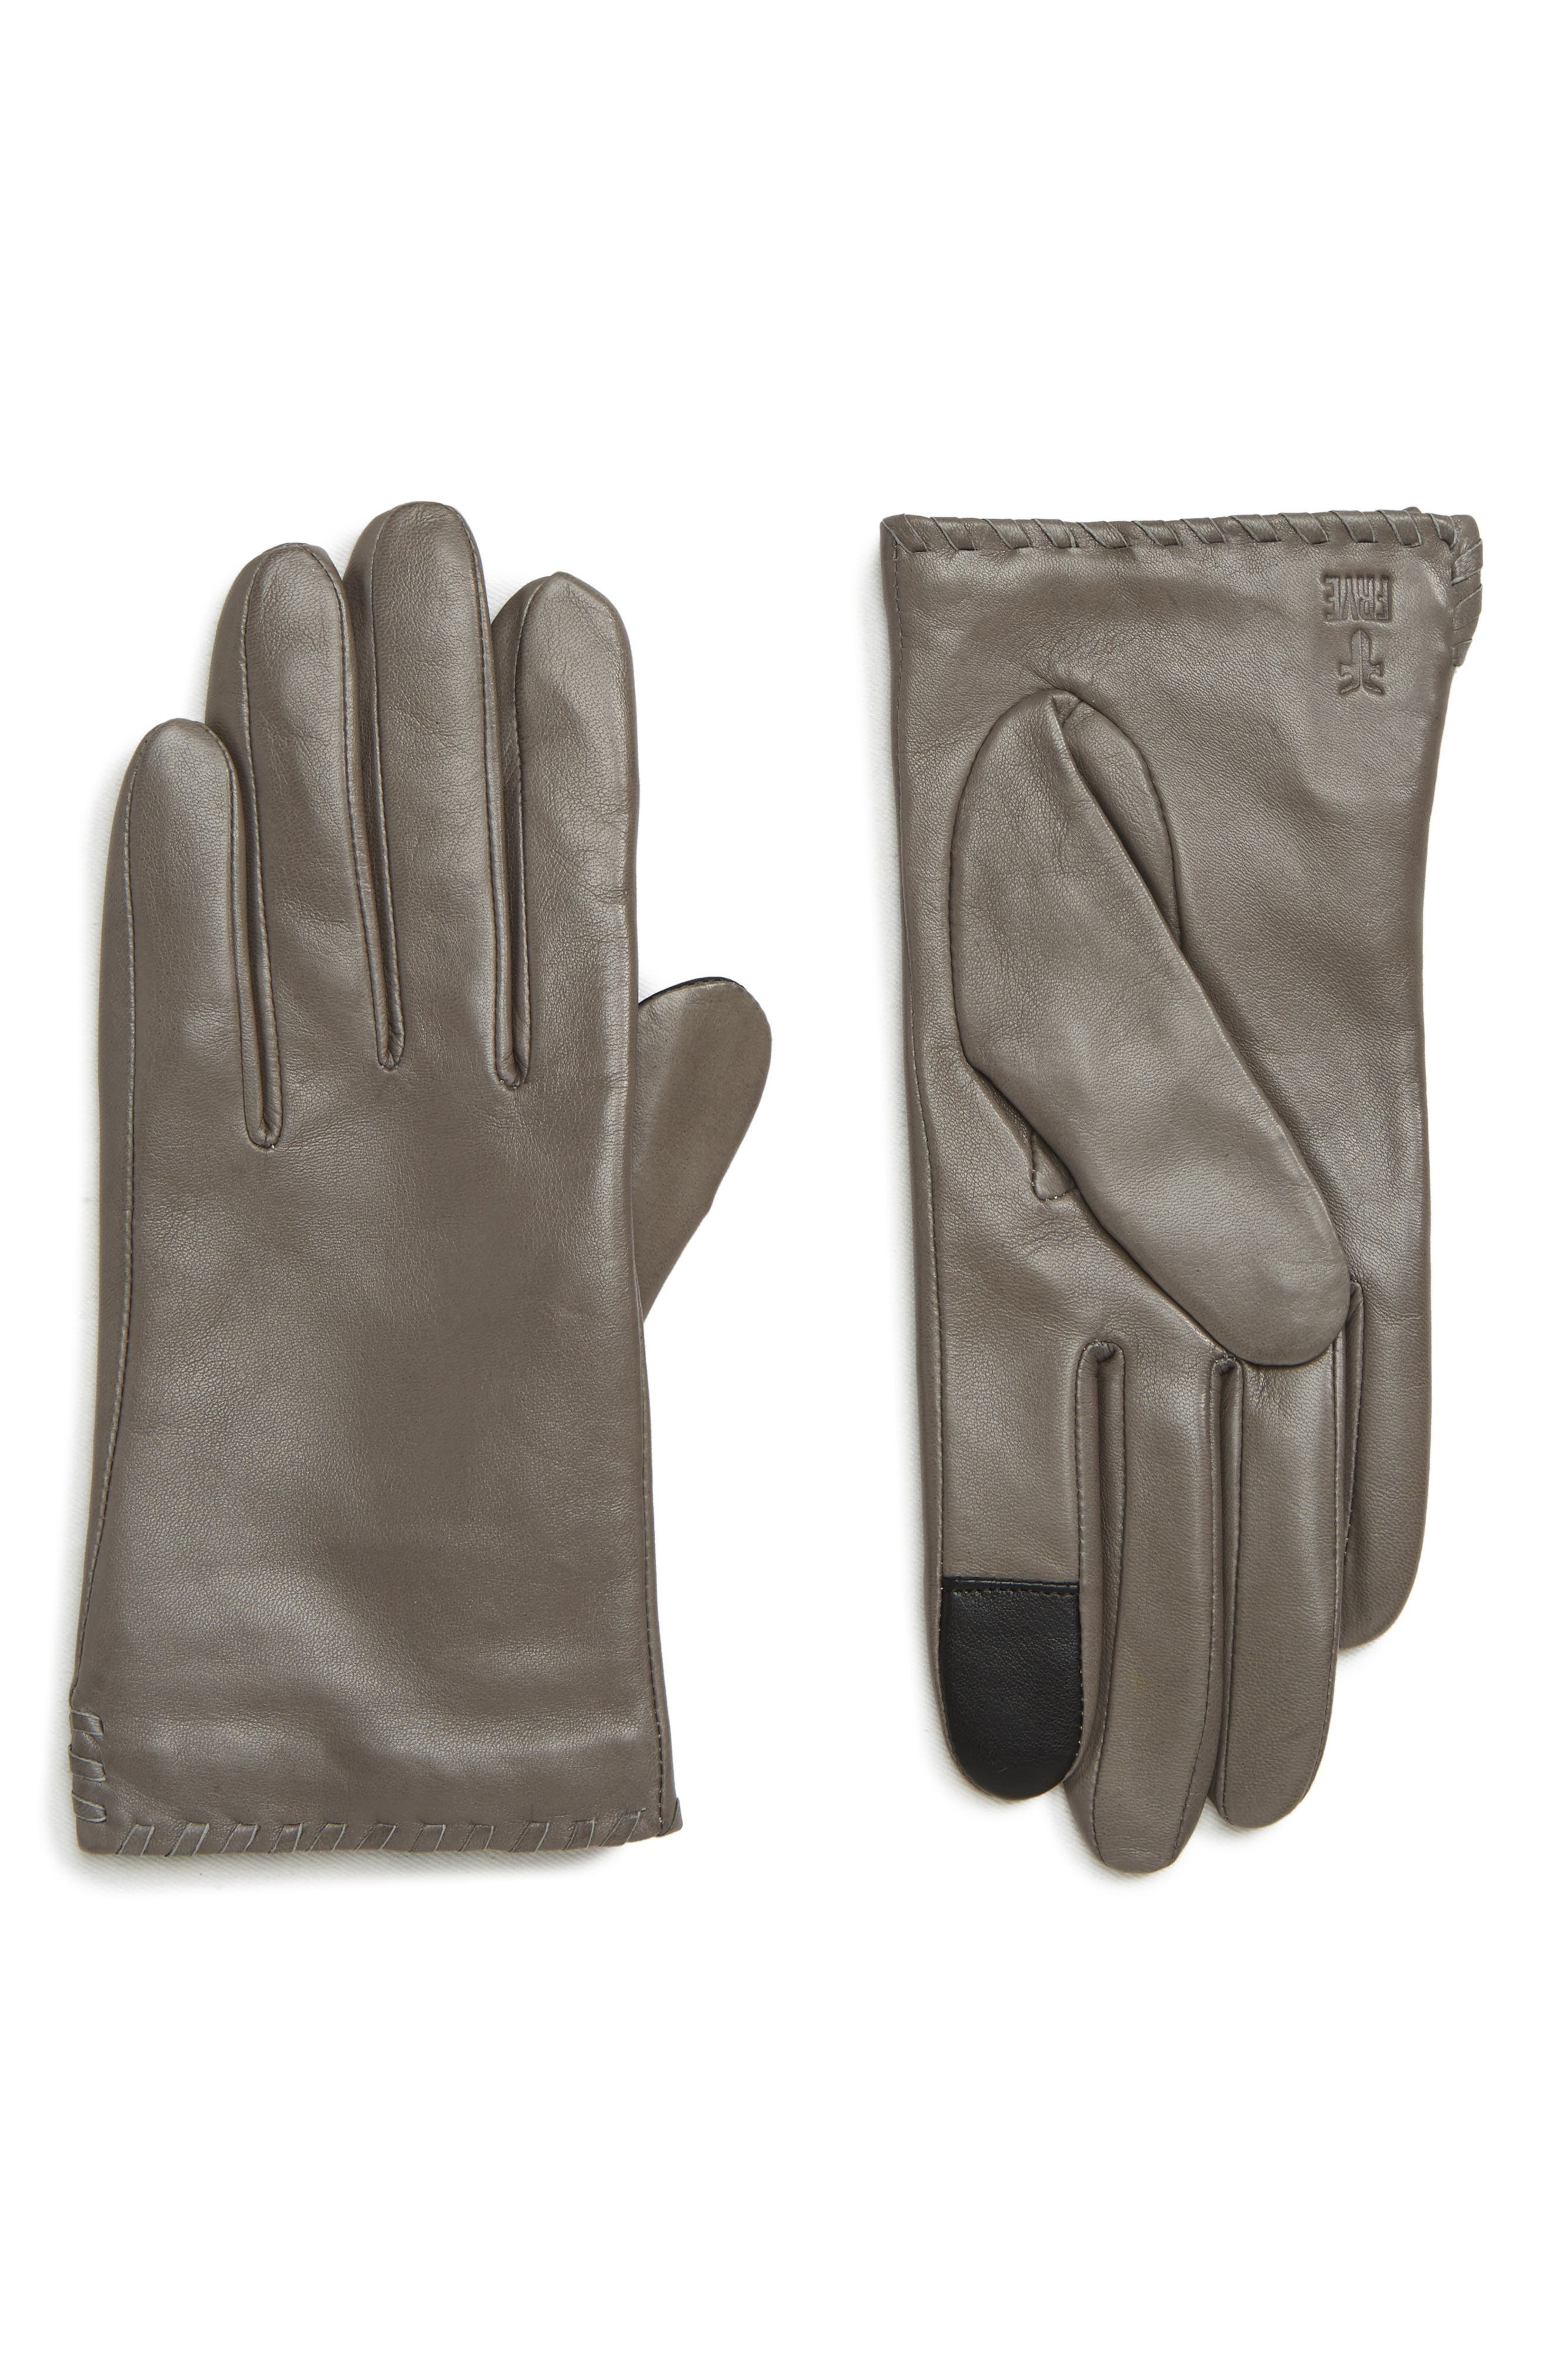 Frye Nora Whipstitch Lambskin Leather Touchscreen Gloves, Grey